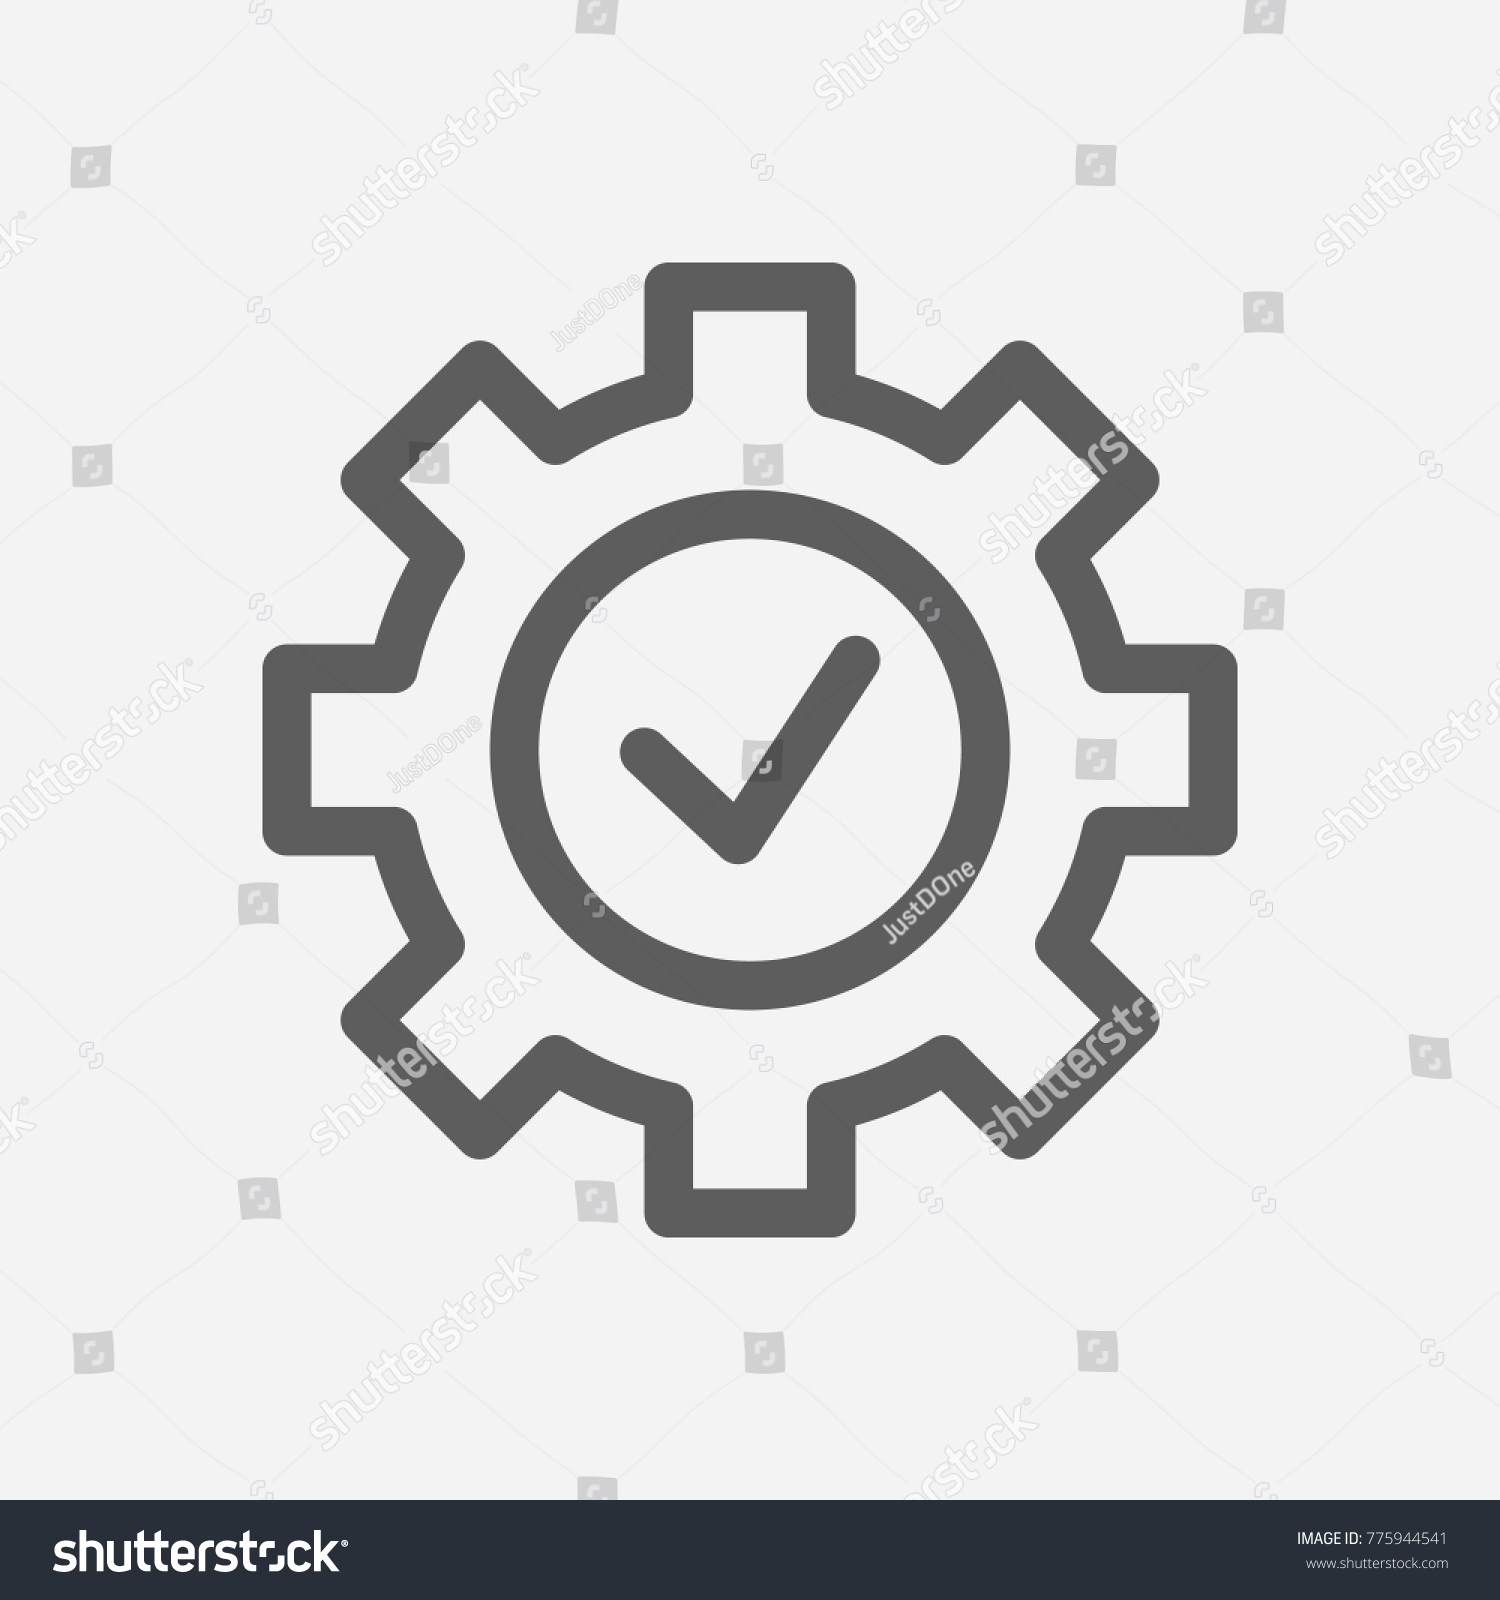 Core values expertise icon line symbol stock illustration core values expertise icon line symbol isolated illustration on core values check sign concept biocorpaavc Image collections